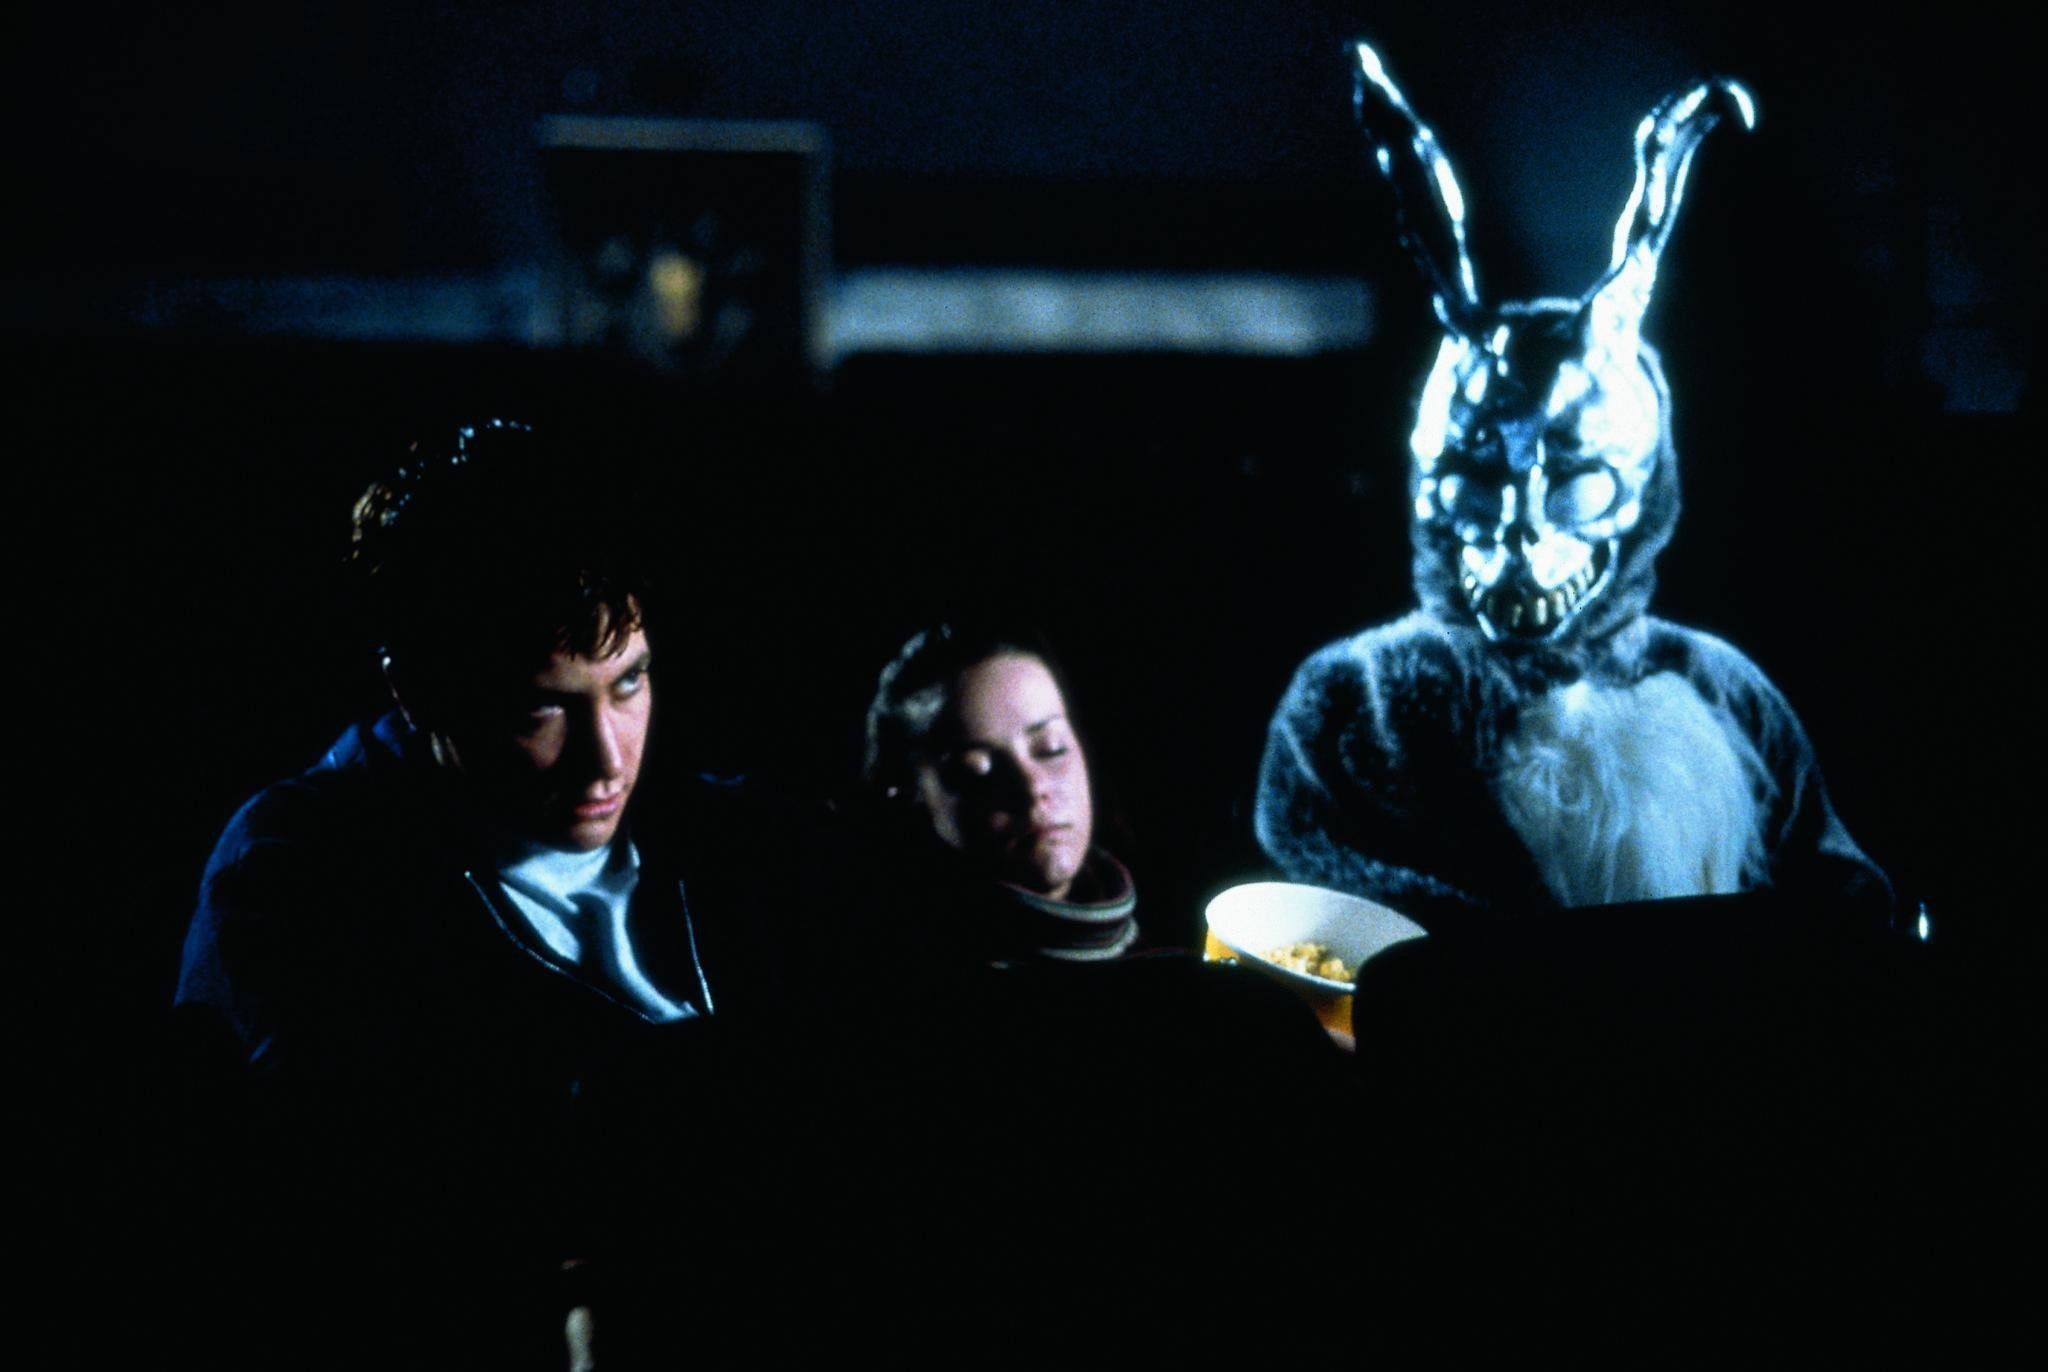 donnie darko Happy birthday drew barrymoredid you know she was also an executive producer for donnie darko and credited for being very instrumental in helping richard kelly get the movie made.